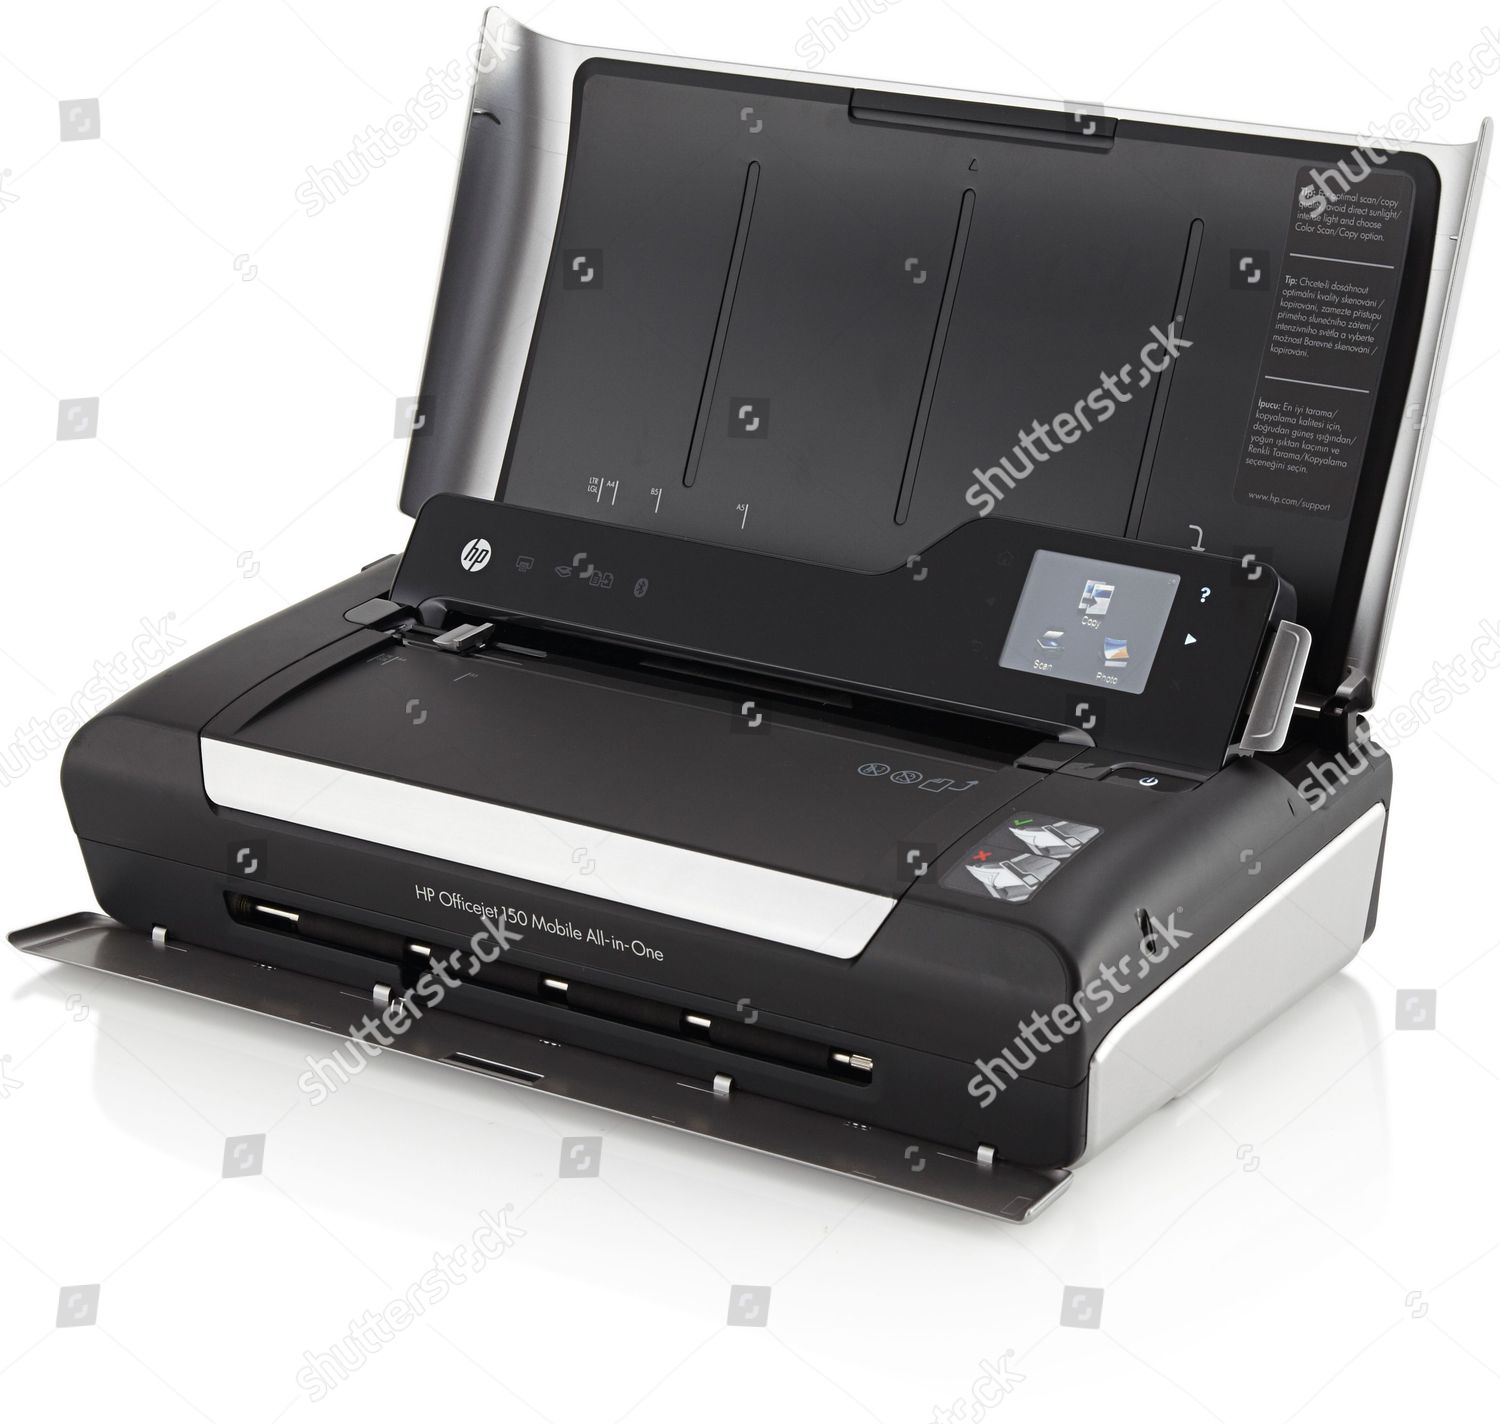 Hp Officejet 150 Mobile Allinone Printer Editorial Stock Photo Stock Image Shutterstock